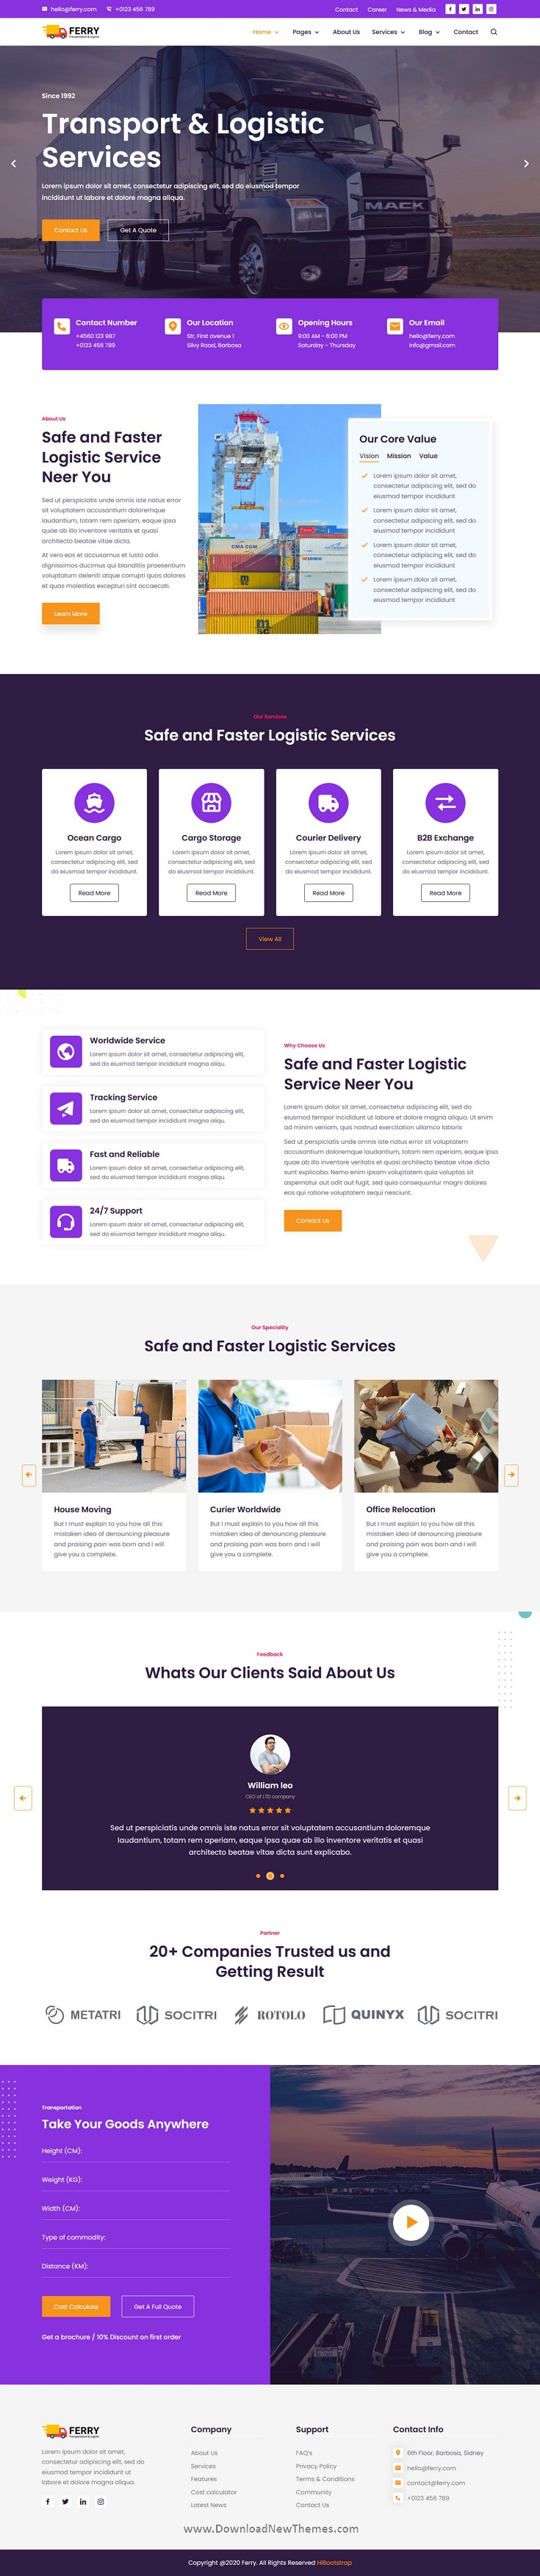 Transport & Logistics Website Template